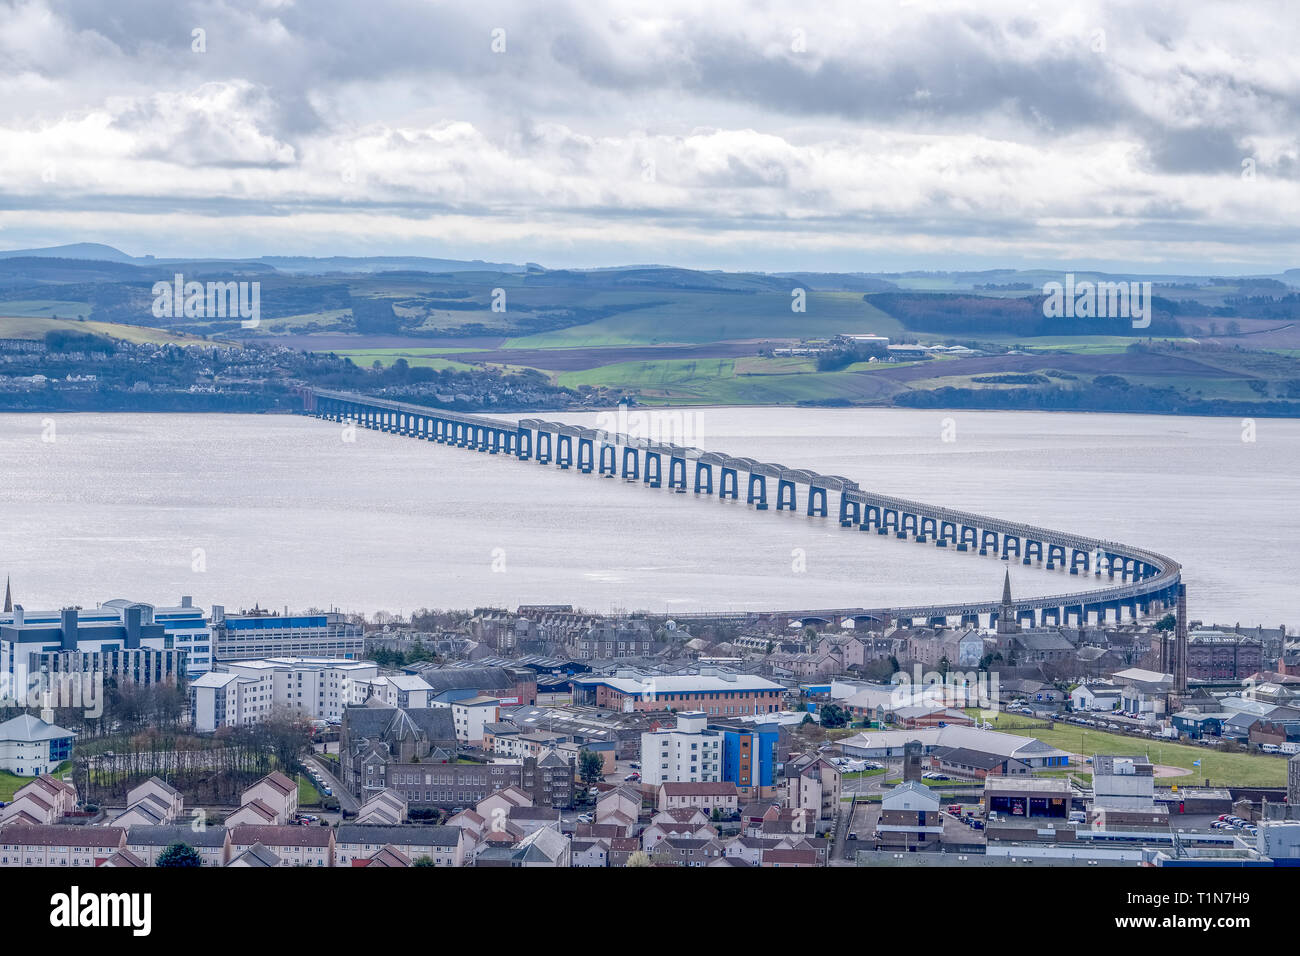 From the monument at Dundee law Hill looking down over the city to the Fourth or Tay Railway Bridge Dundee Scotland - Stock Image